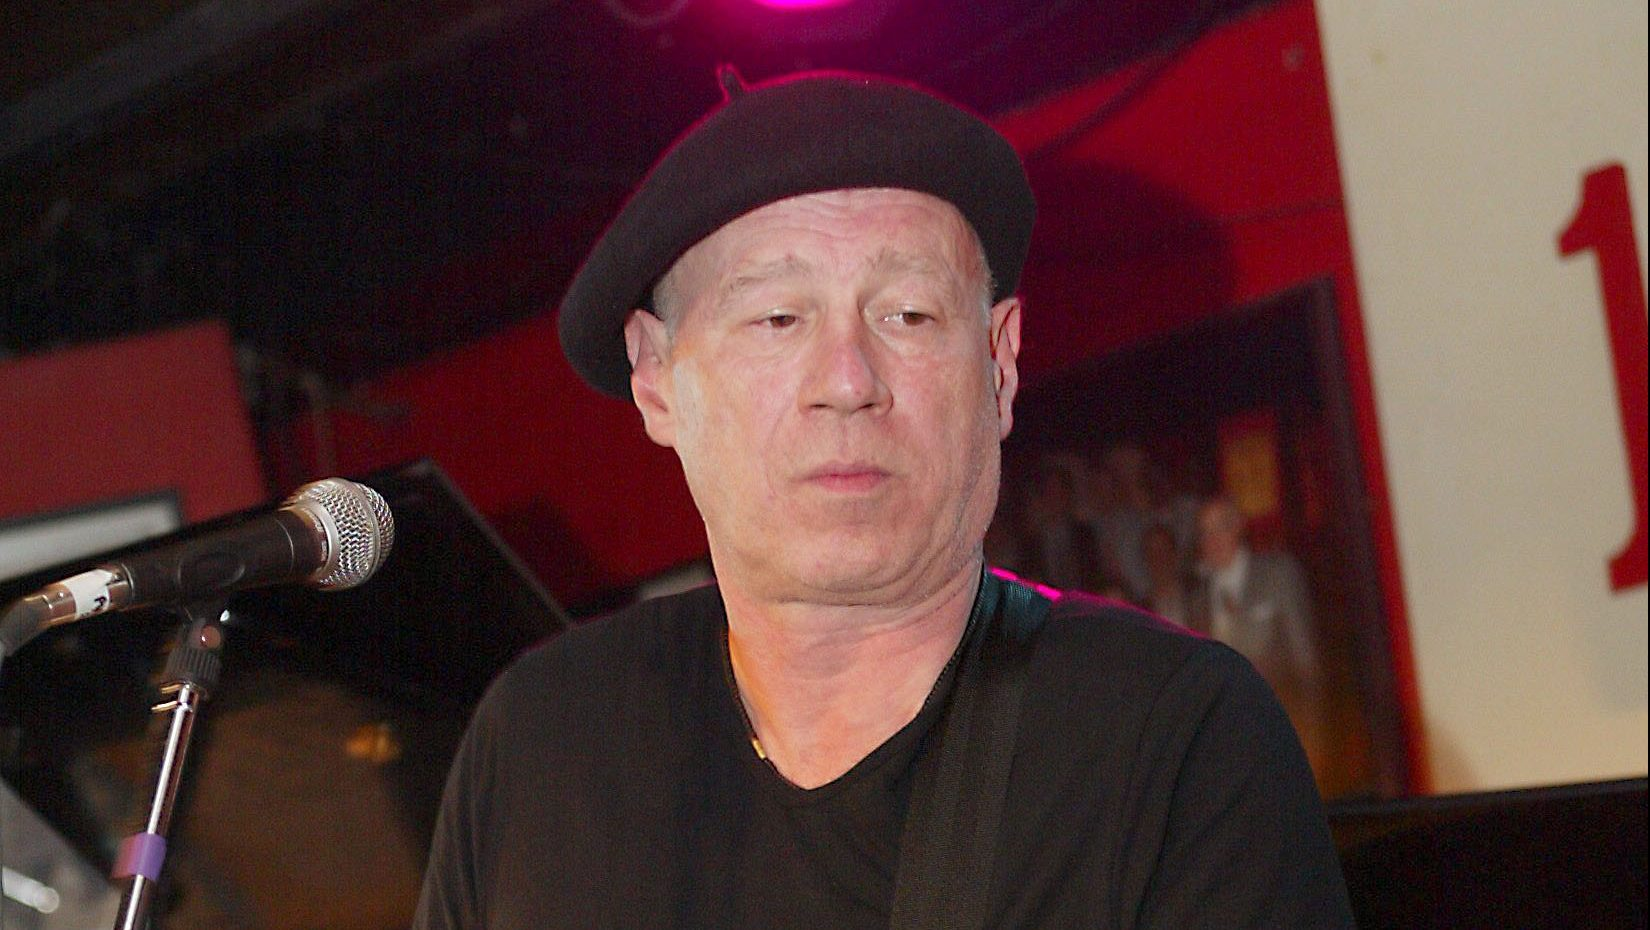 'Monty Python' and 'Rutles' Musician Neil Innes Dies at 75